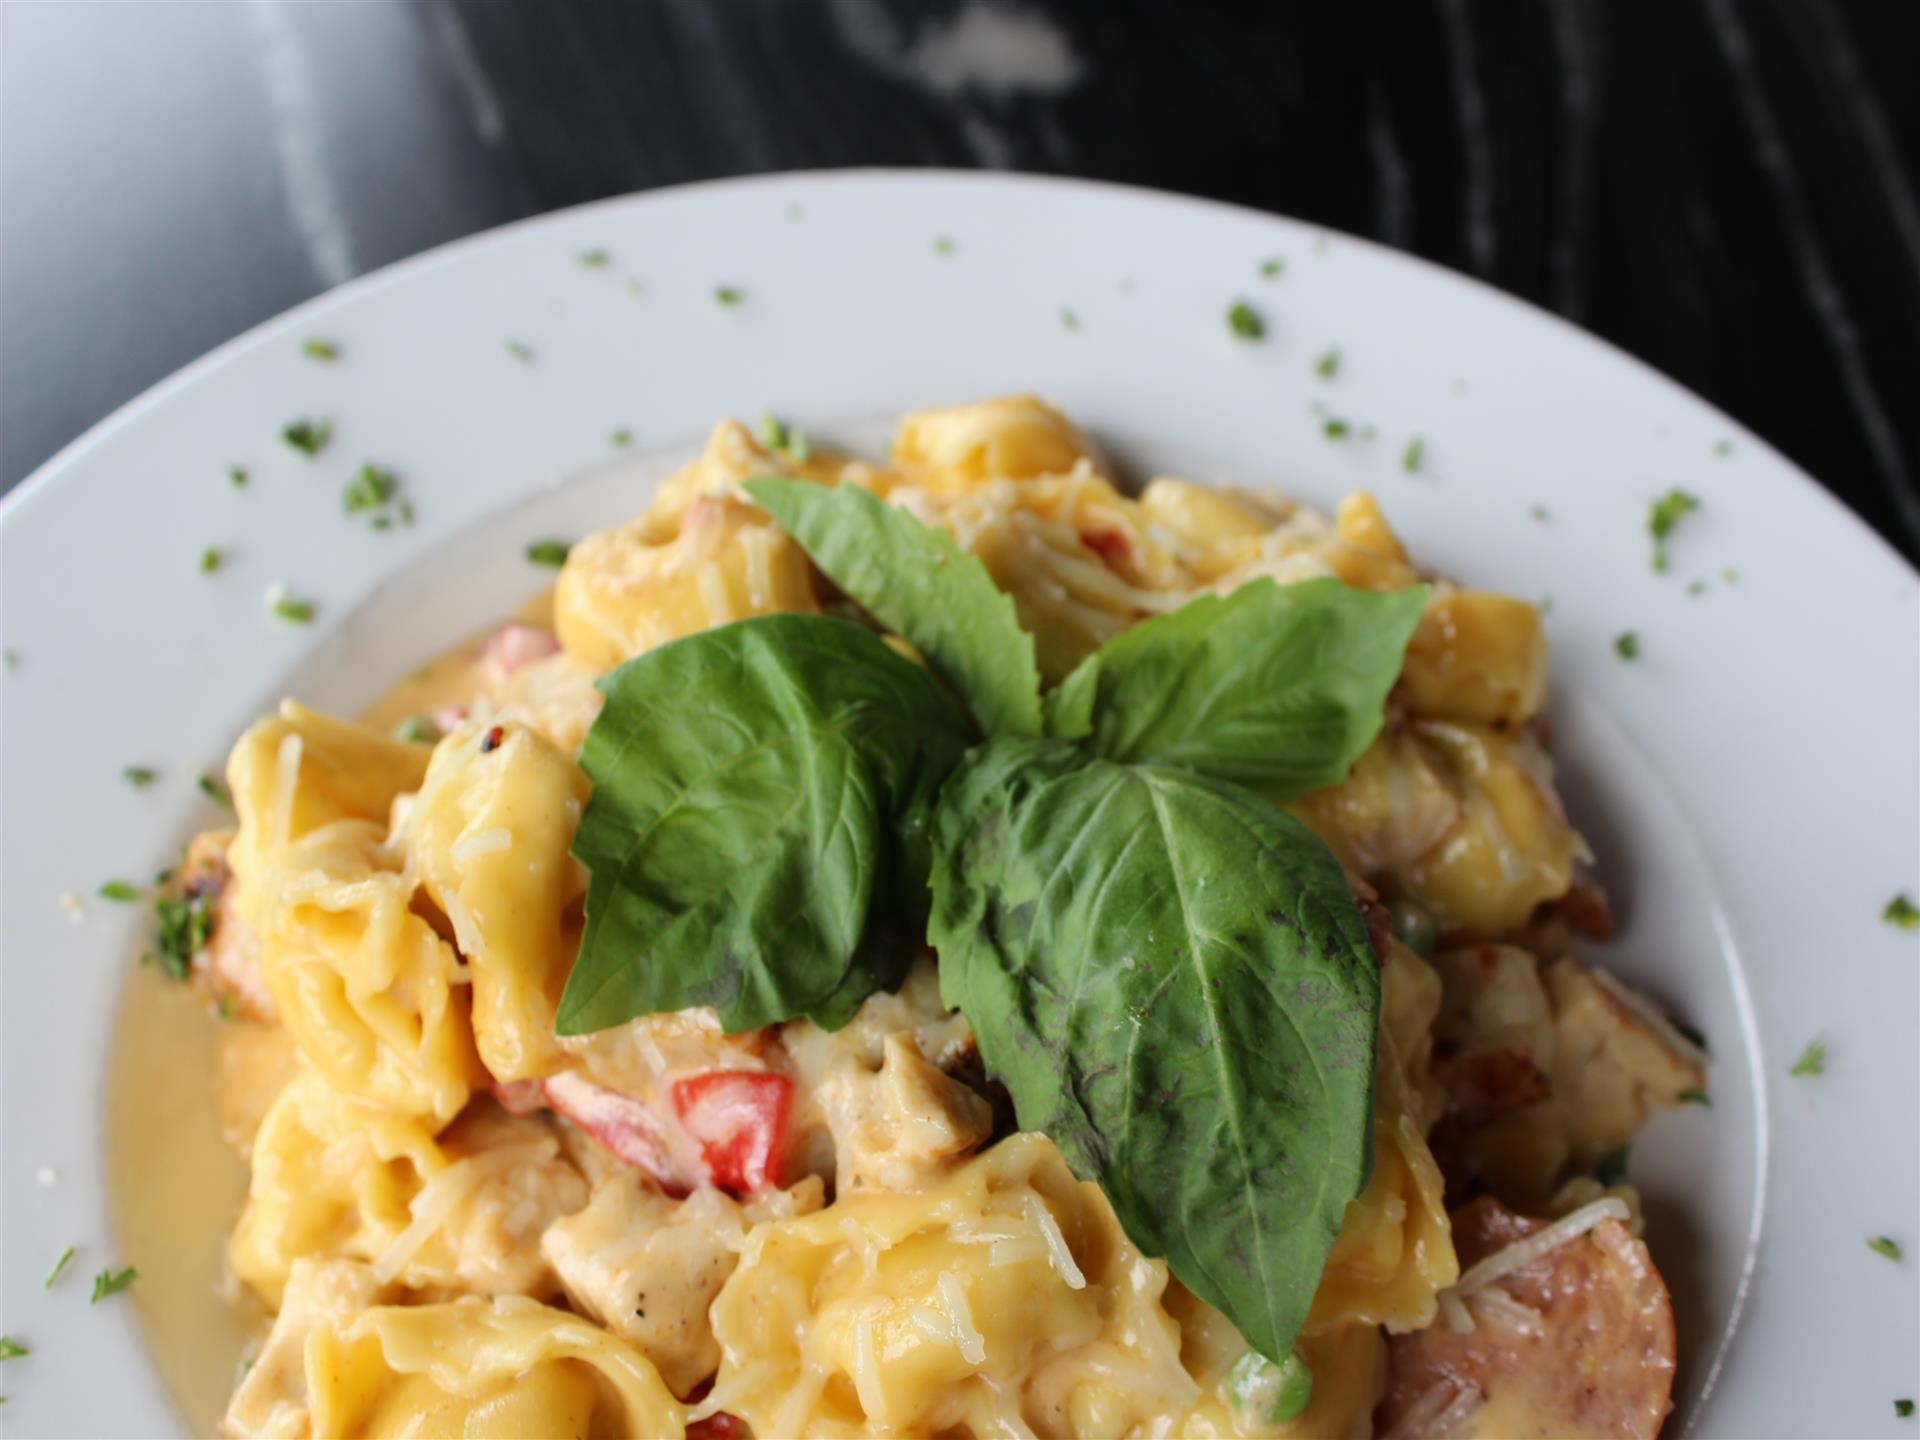 tortellini in a creamy sauce with sausage and peppers